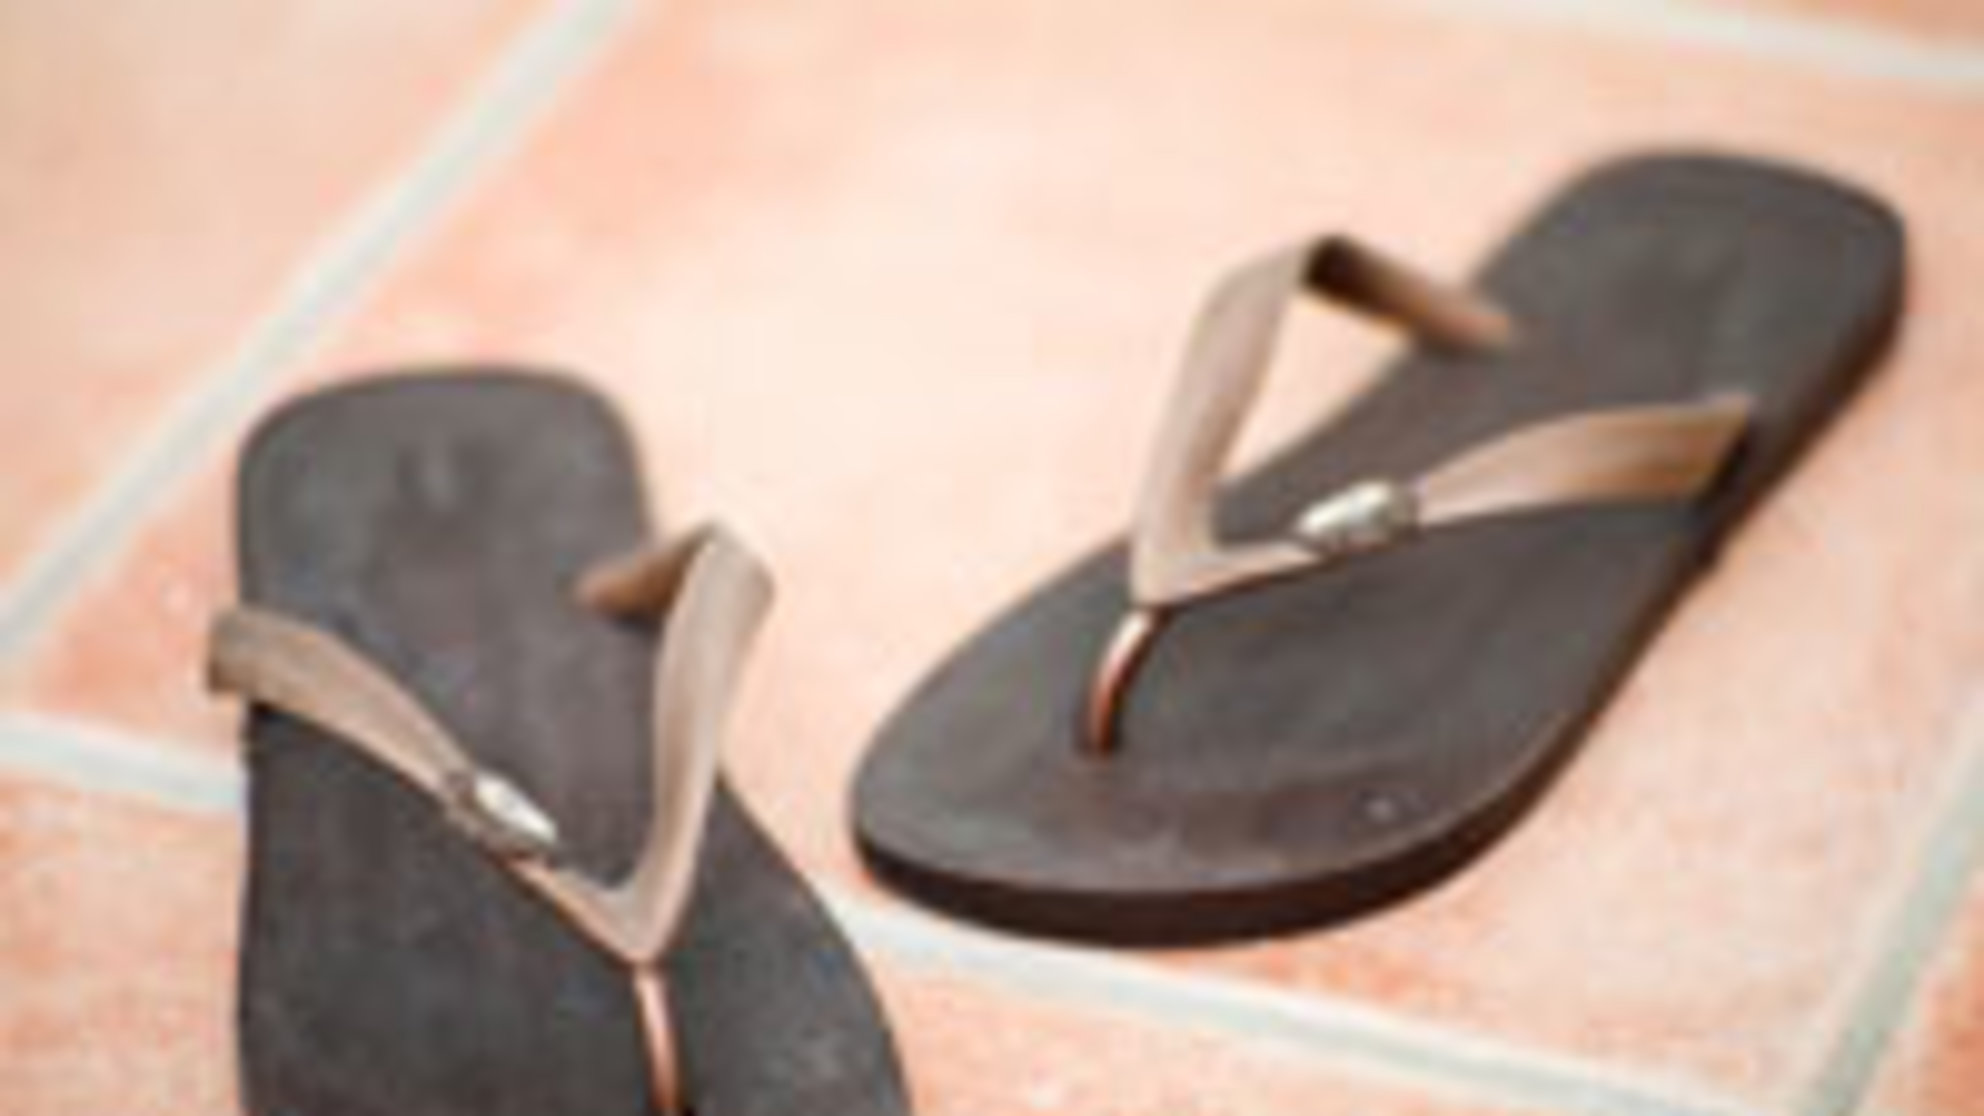 Embarrassing Questions: Do flip-flops really protect me from catching something in the shower?